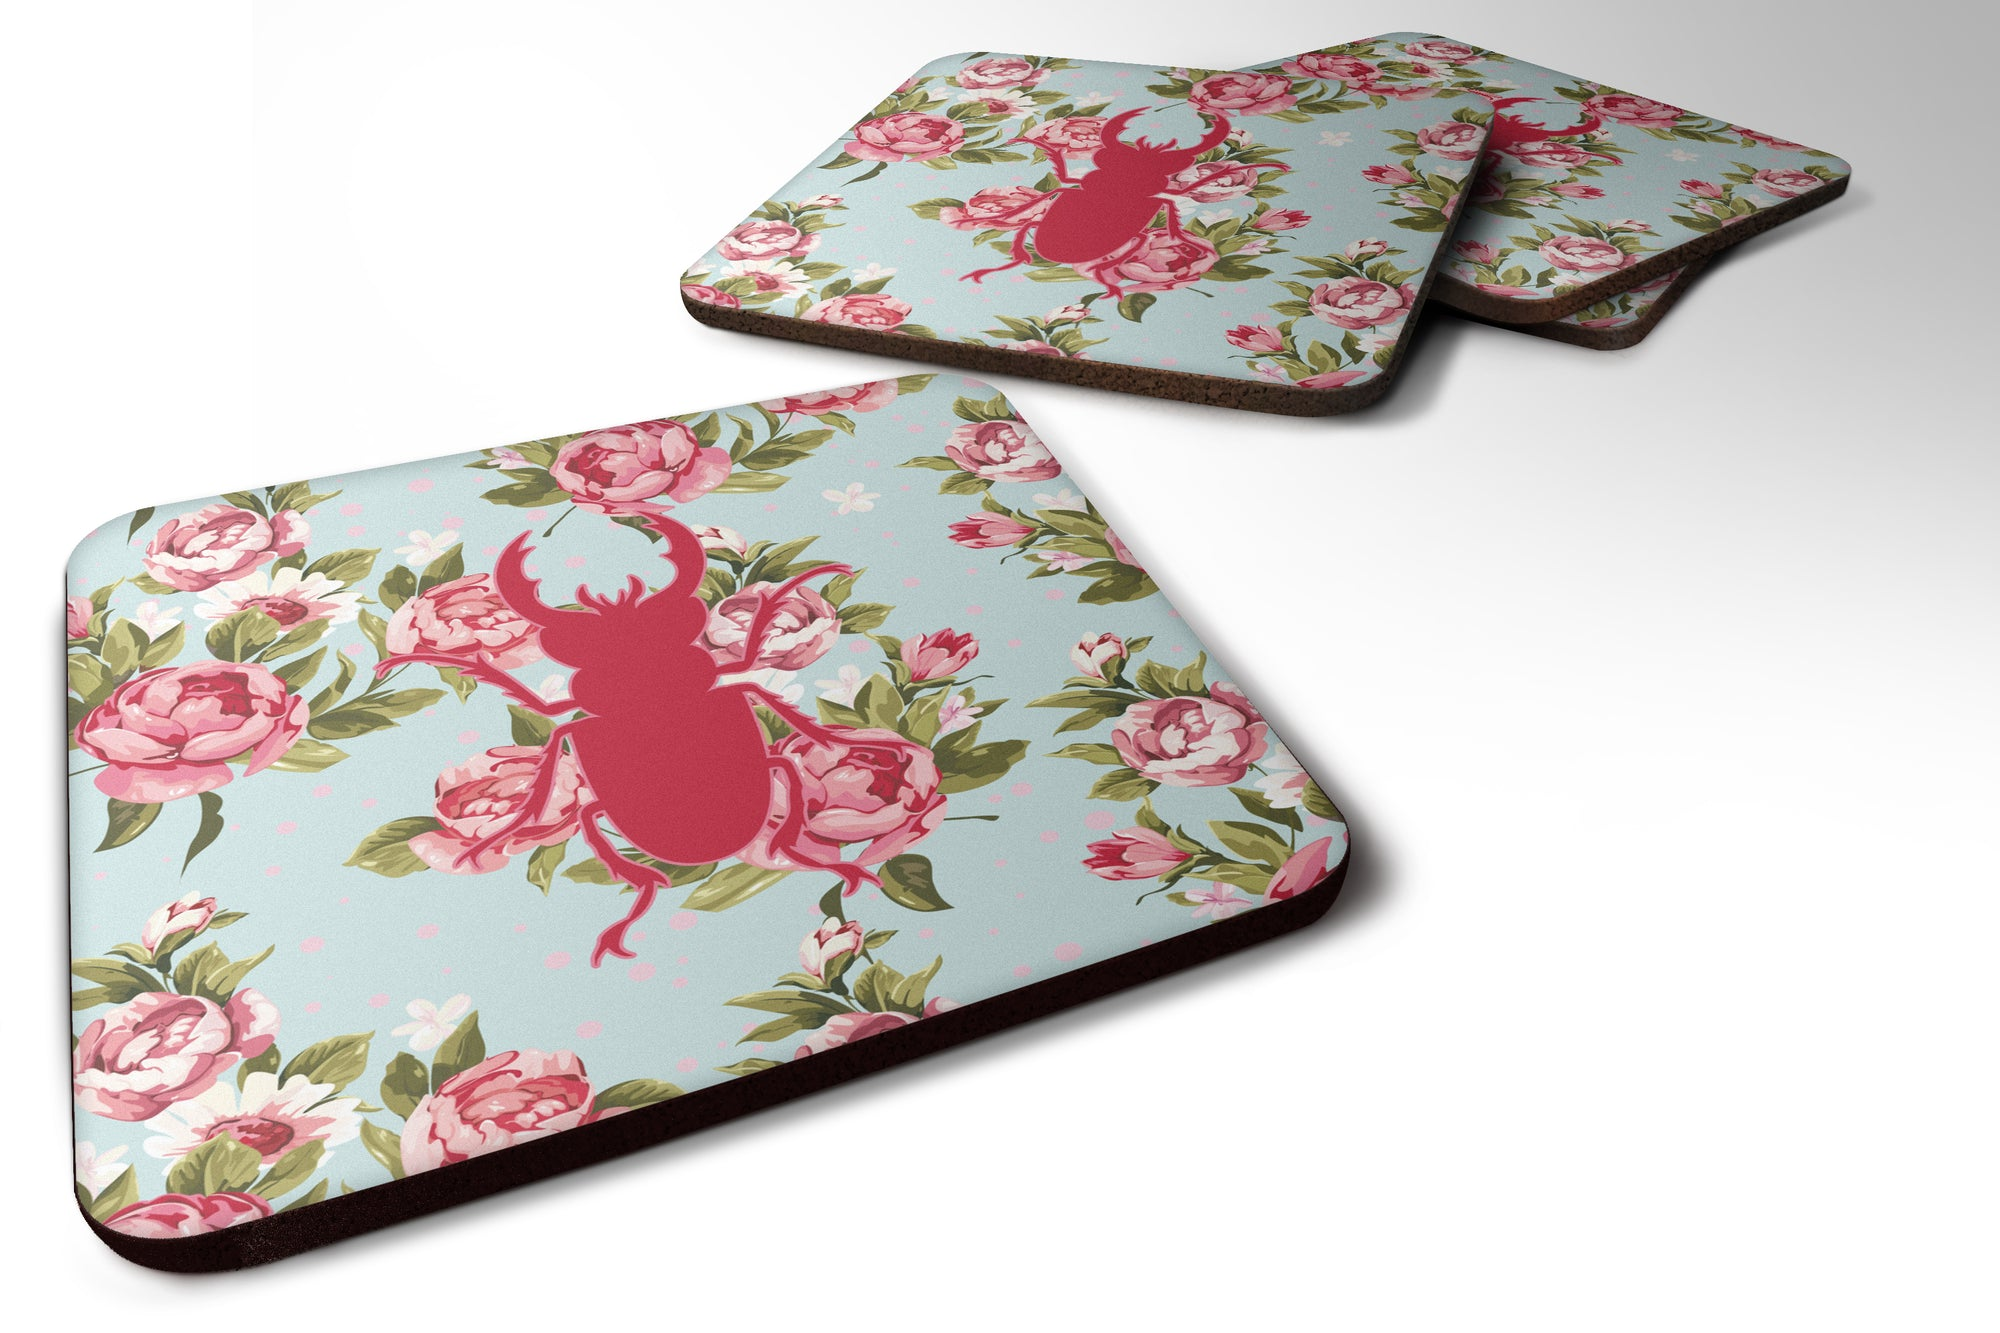 Set of 4 Beetle Shabby Chic Blue Roses Foam Coasters by Caroline's Treasures